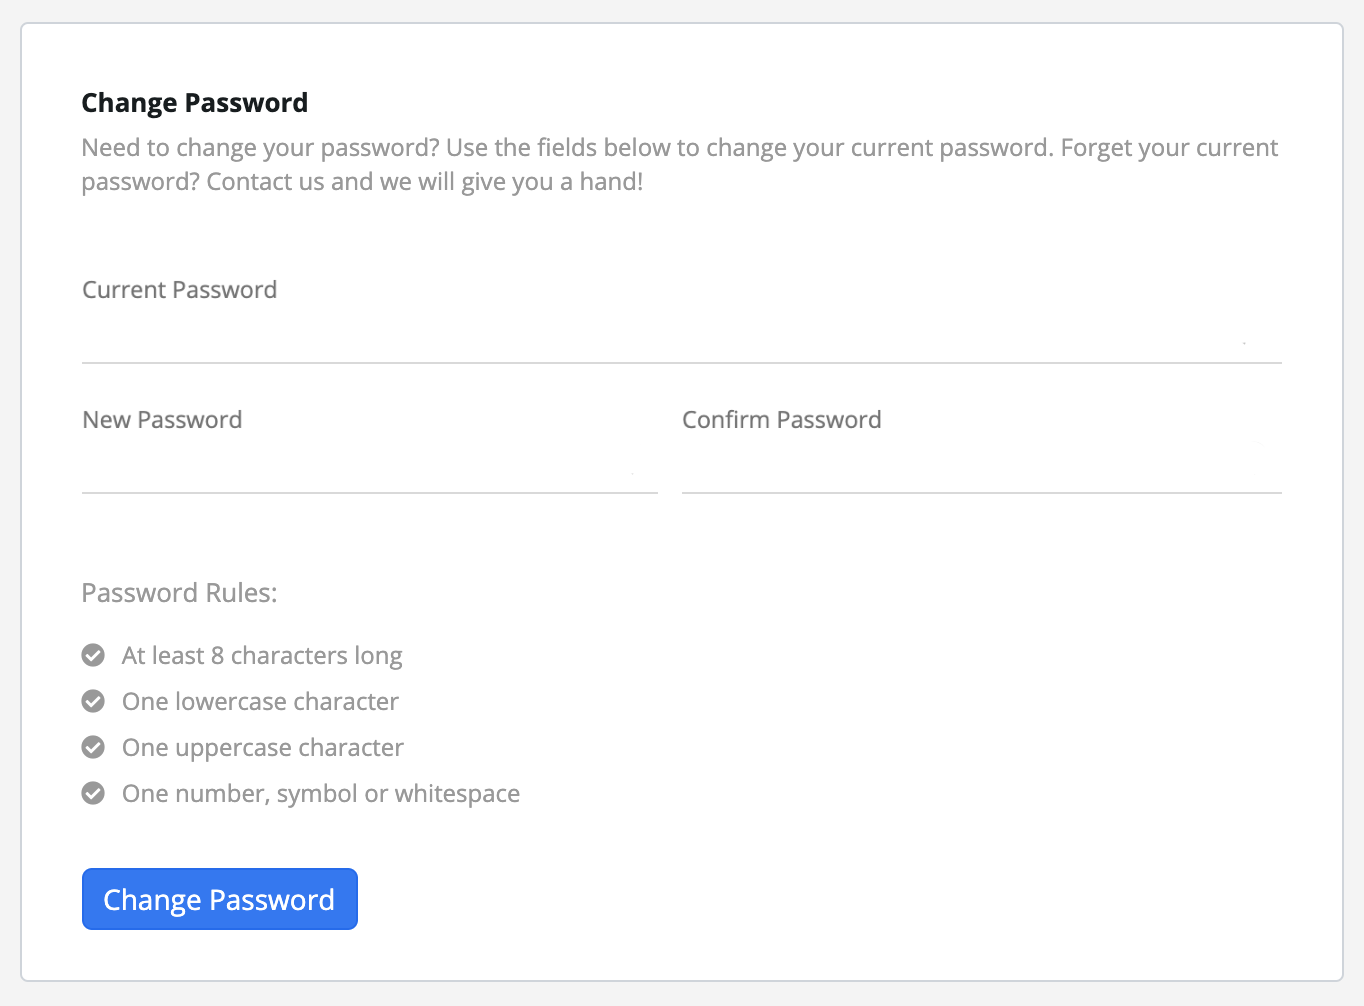 Change your password if you need to make an adjustment. Make sure you follow the password rules.